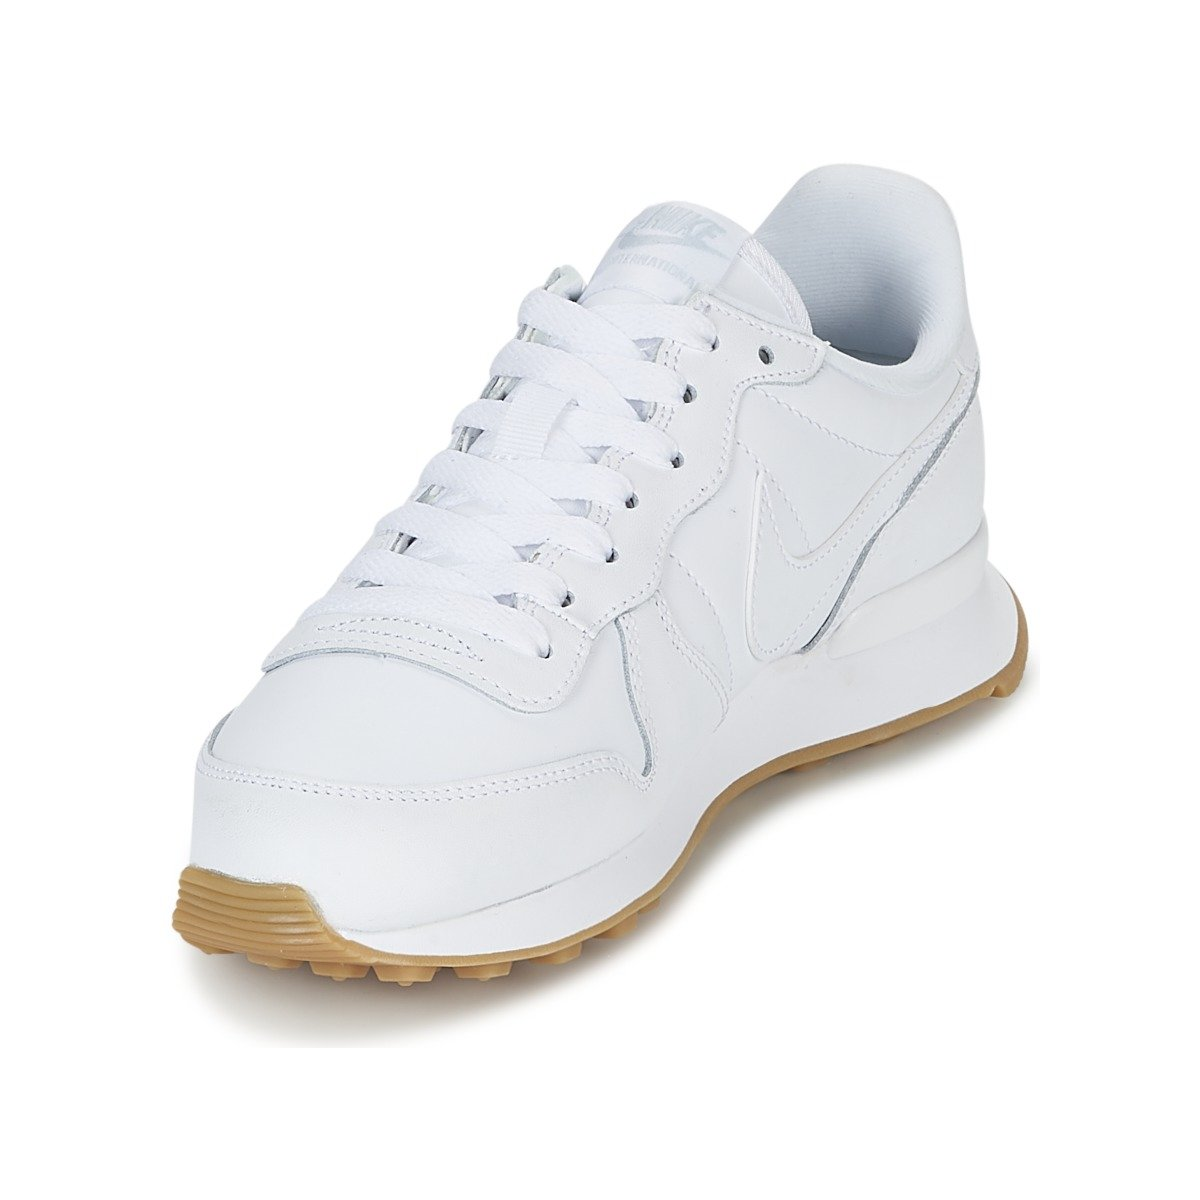 4090fd909cc9 ... NIKE Internationalist Damen Sneakers Braun Mehrfarbig (Weiß Weiß Weiß Gum  Light Braun ...